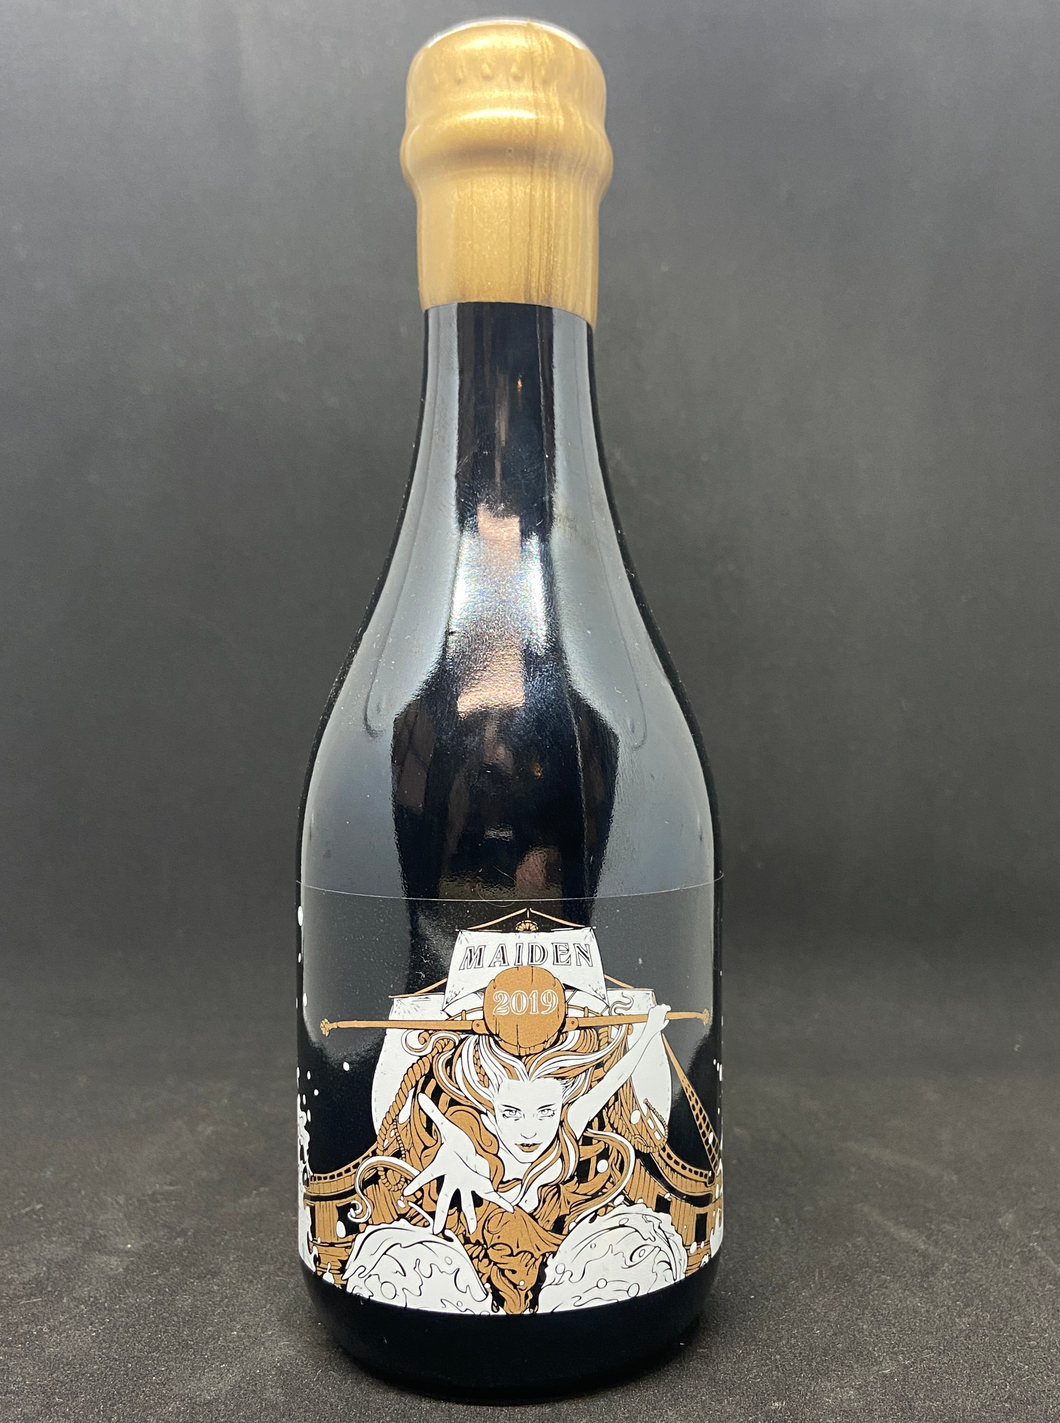 Siren Maiden 2019, 11.5% 375ml